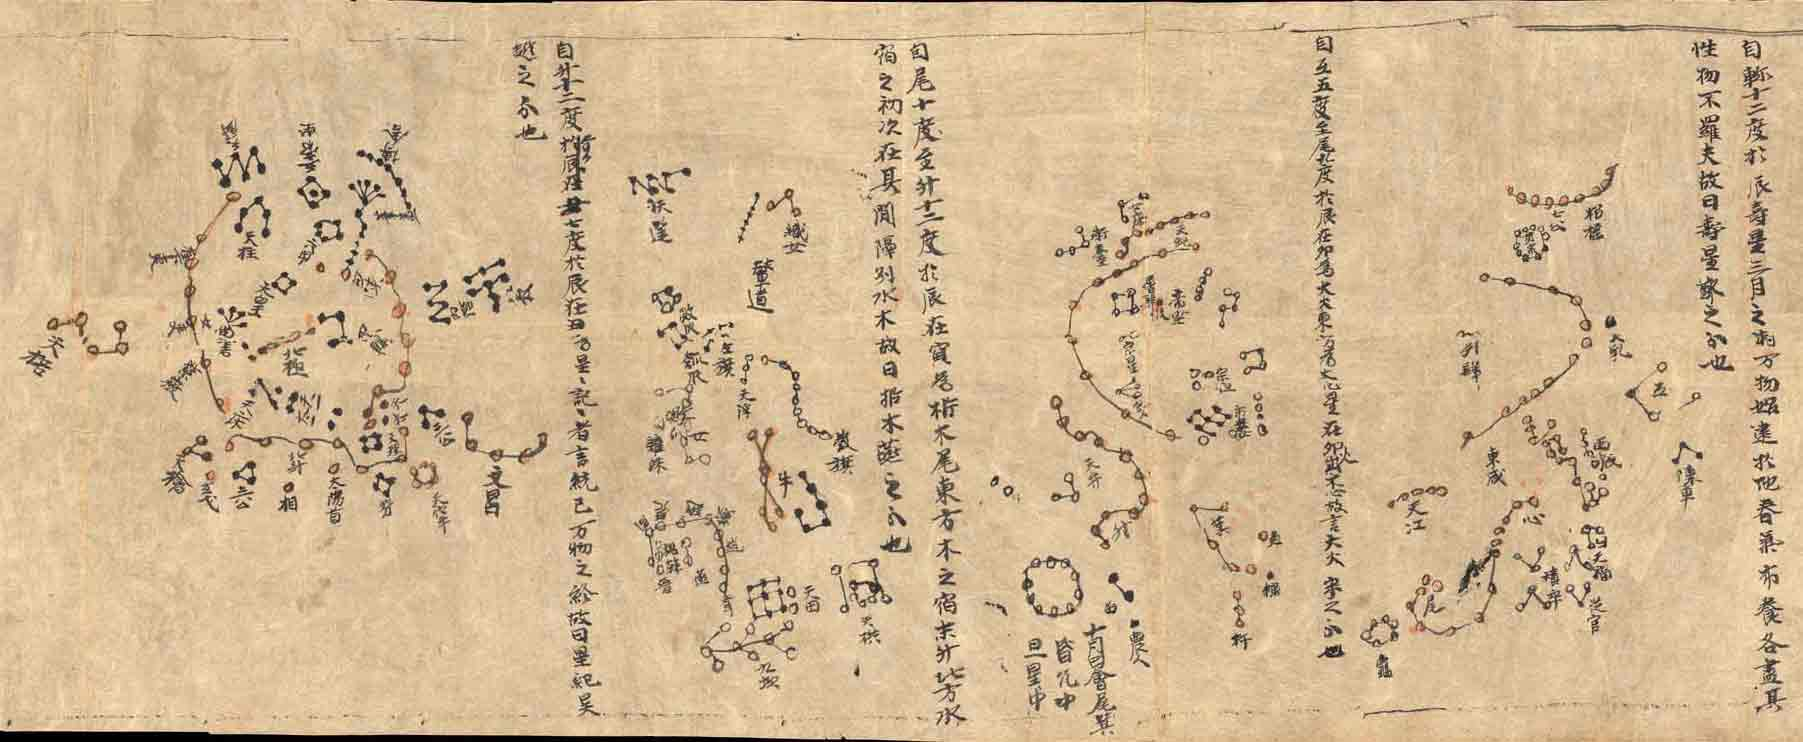 The oldest extant star chart